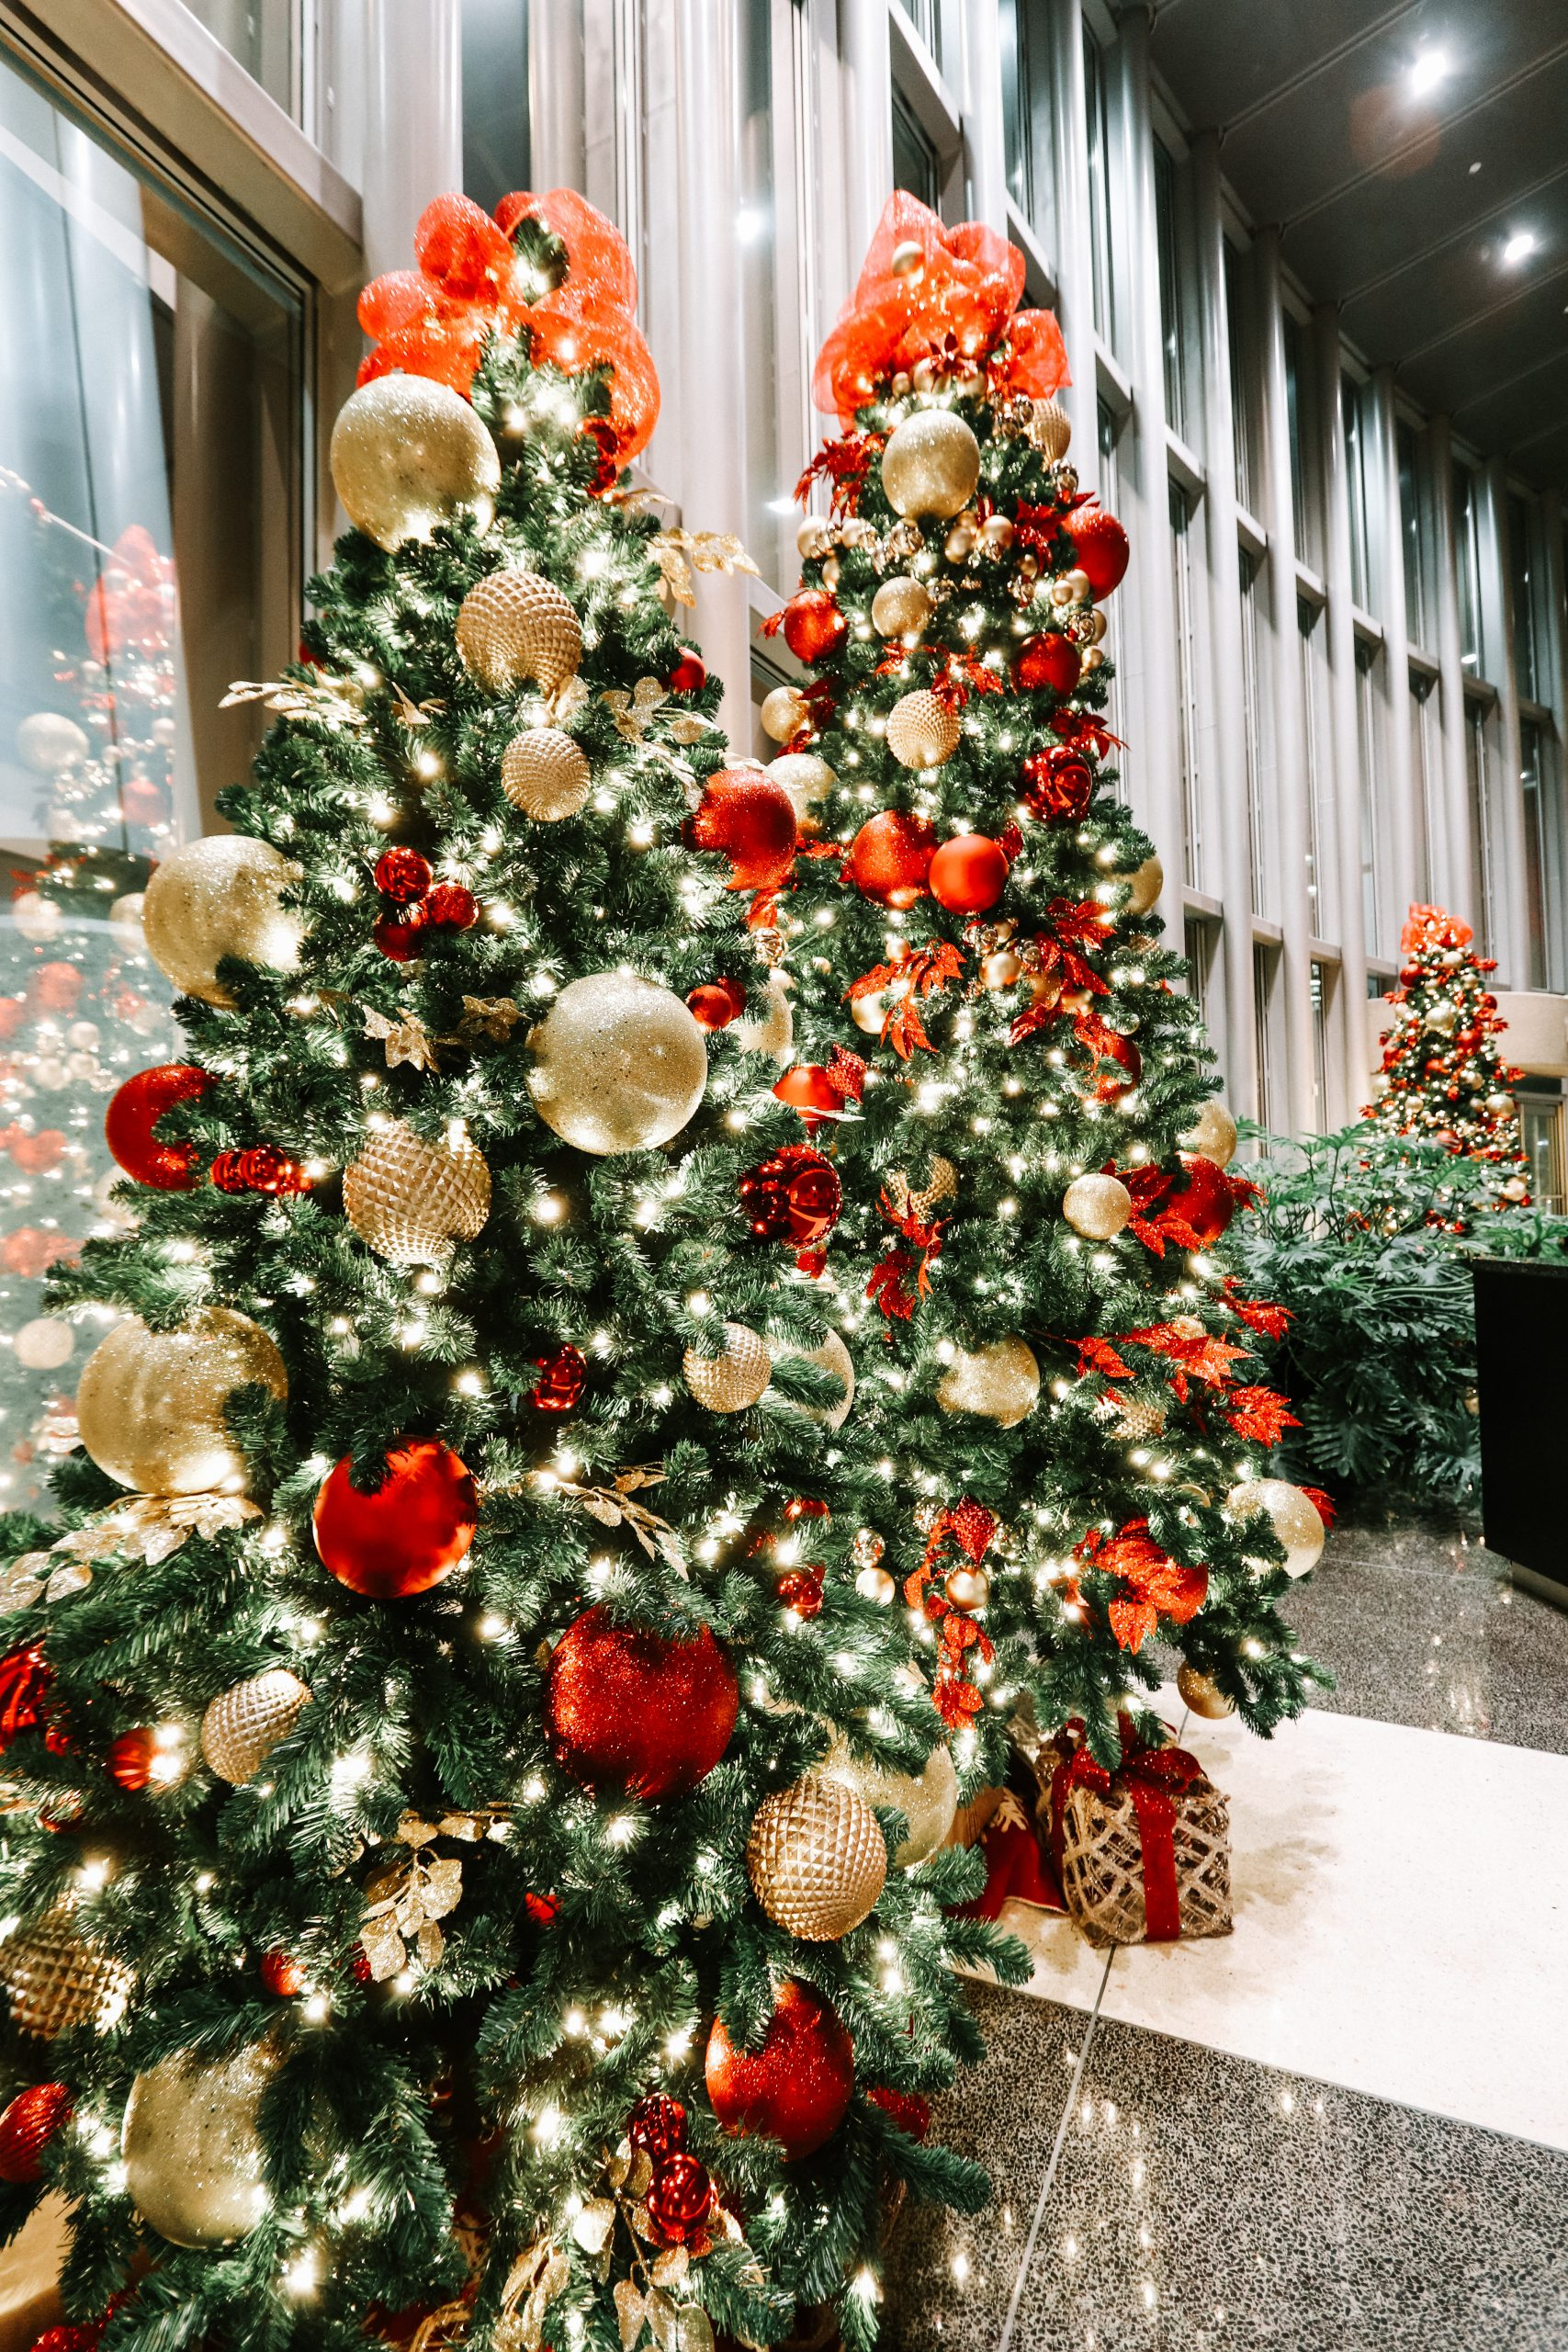 commercial christmas trees in office lobby decorated in traditional red and gold decor